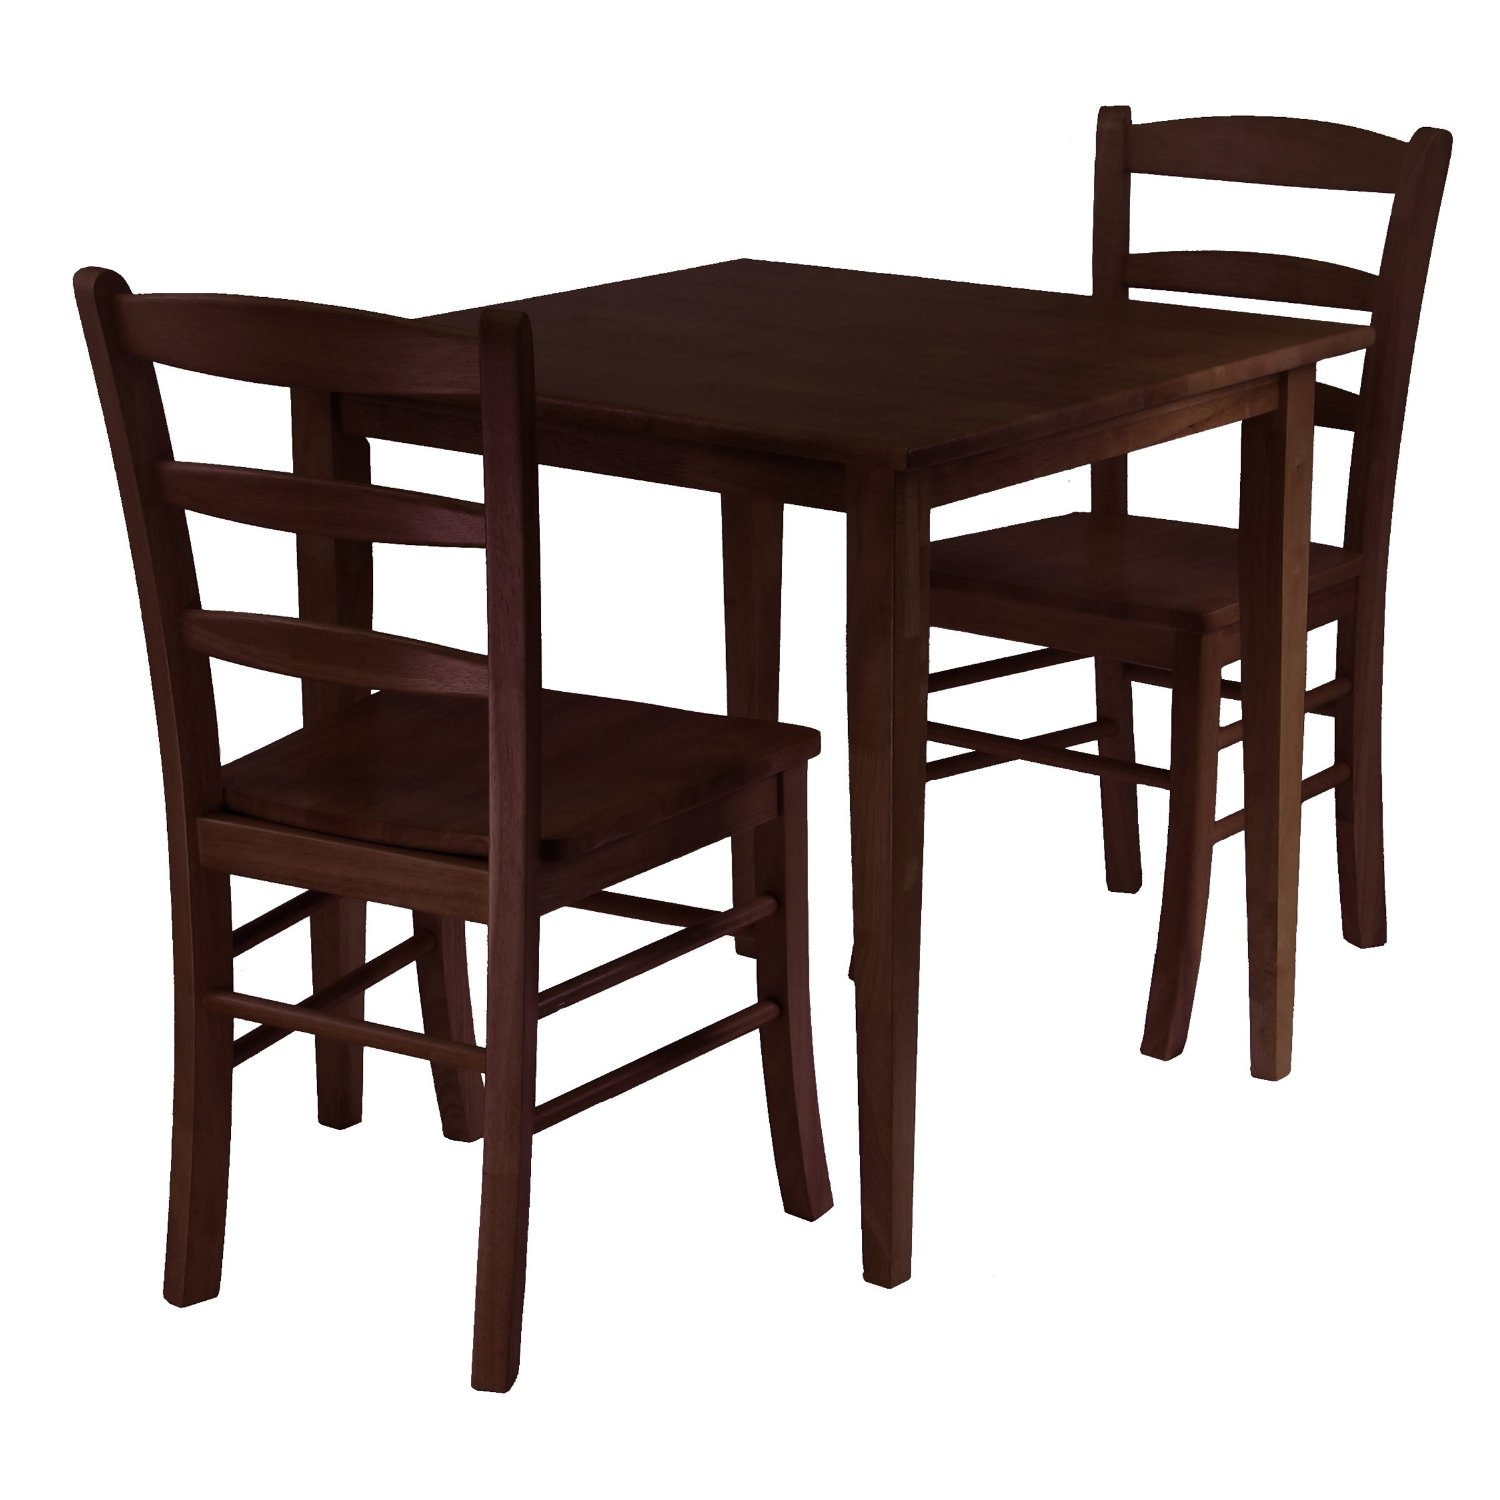 Small dinette set design homesfeed for Table and chairs furniture